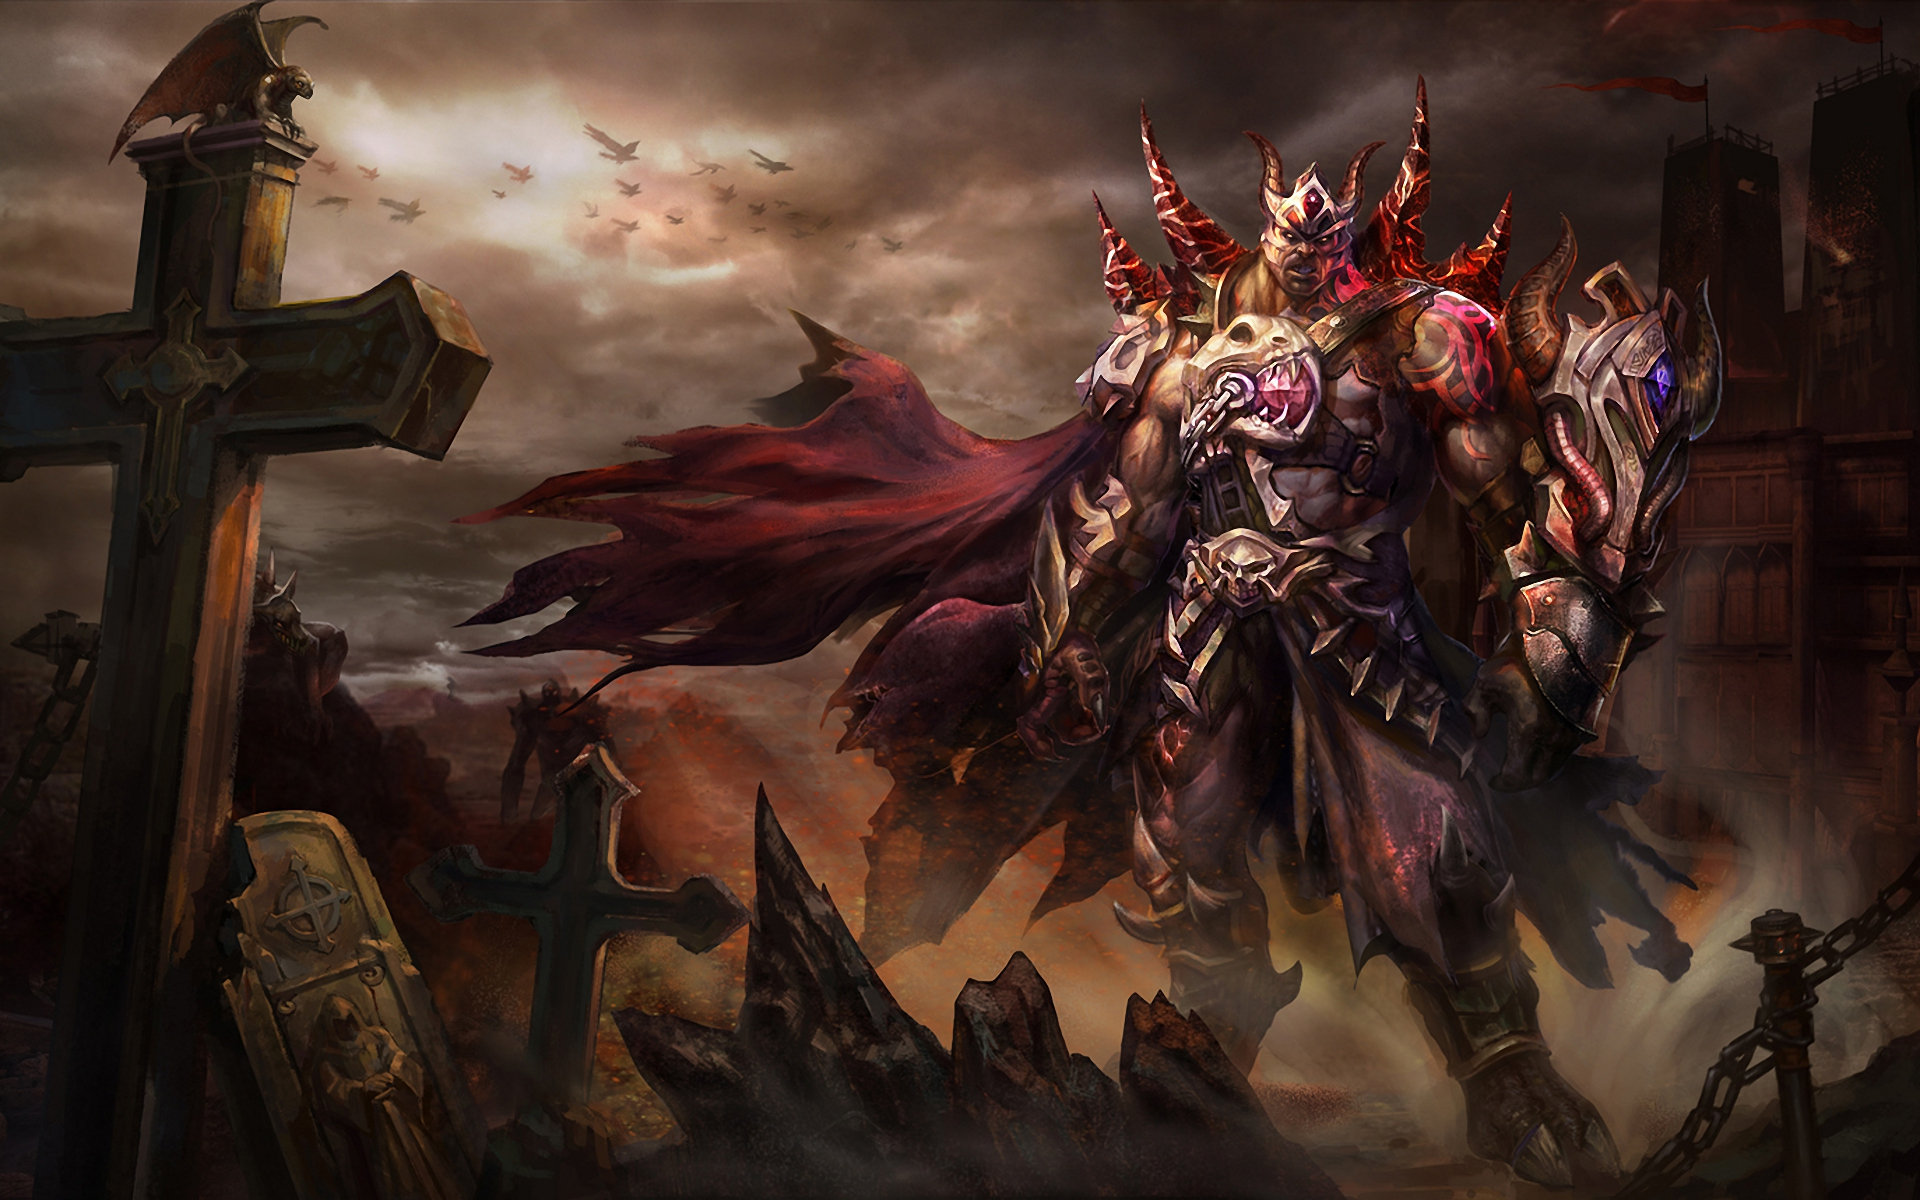 Art Demon Armor Sparks Crosses Lock Fantasy Warrior Warriors Dark Cross Battlefield Wallpaper